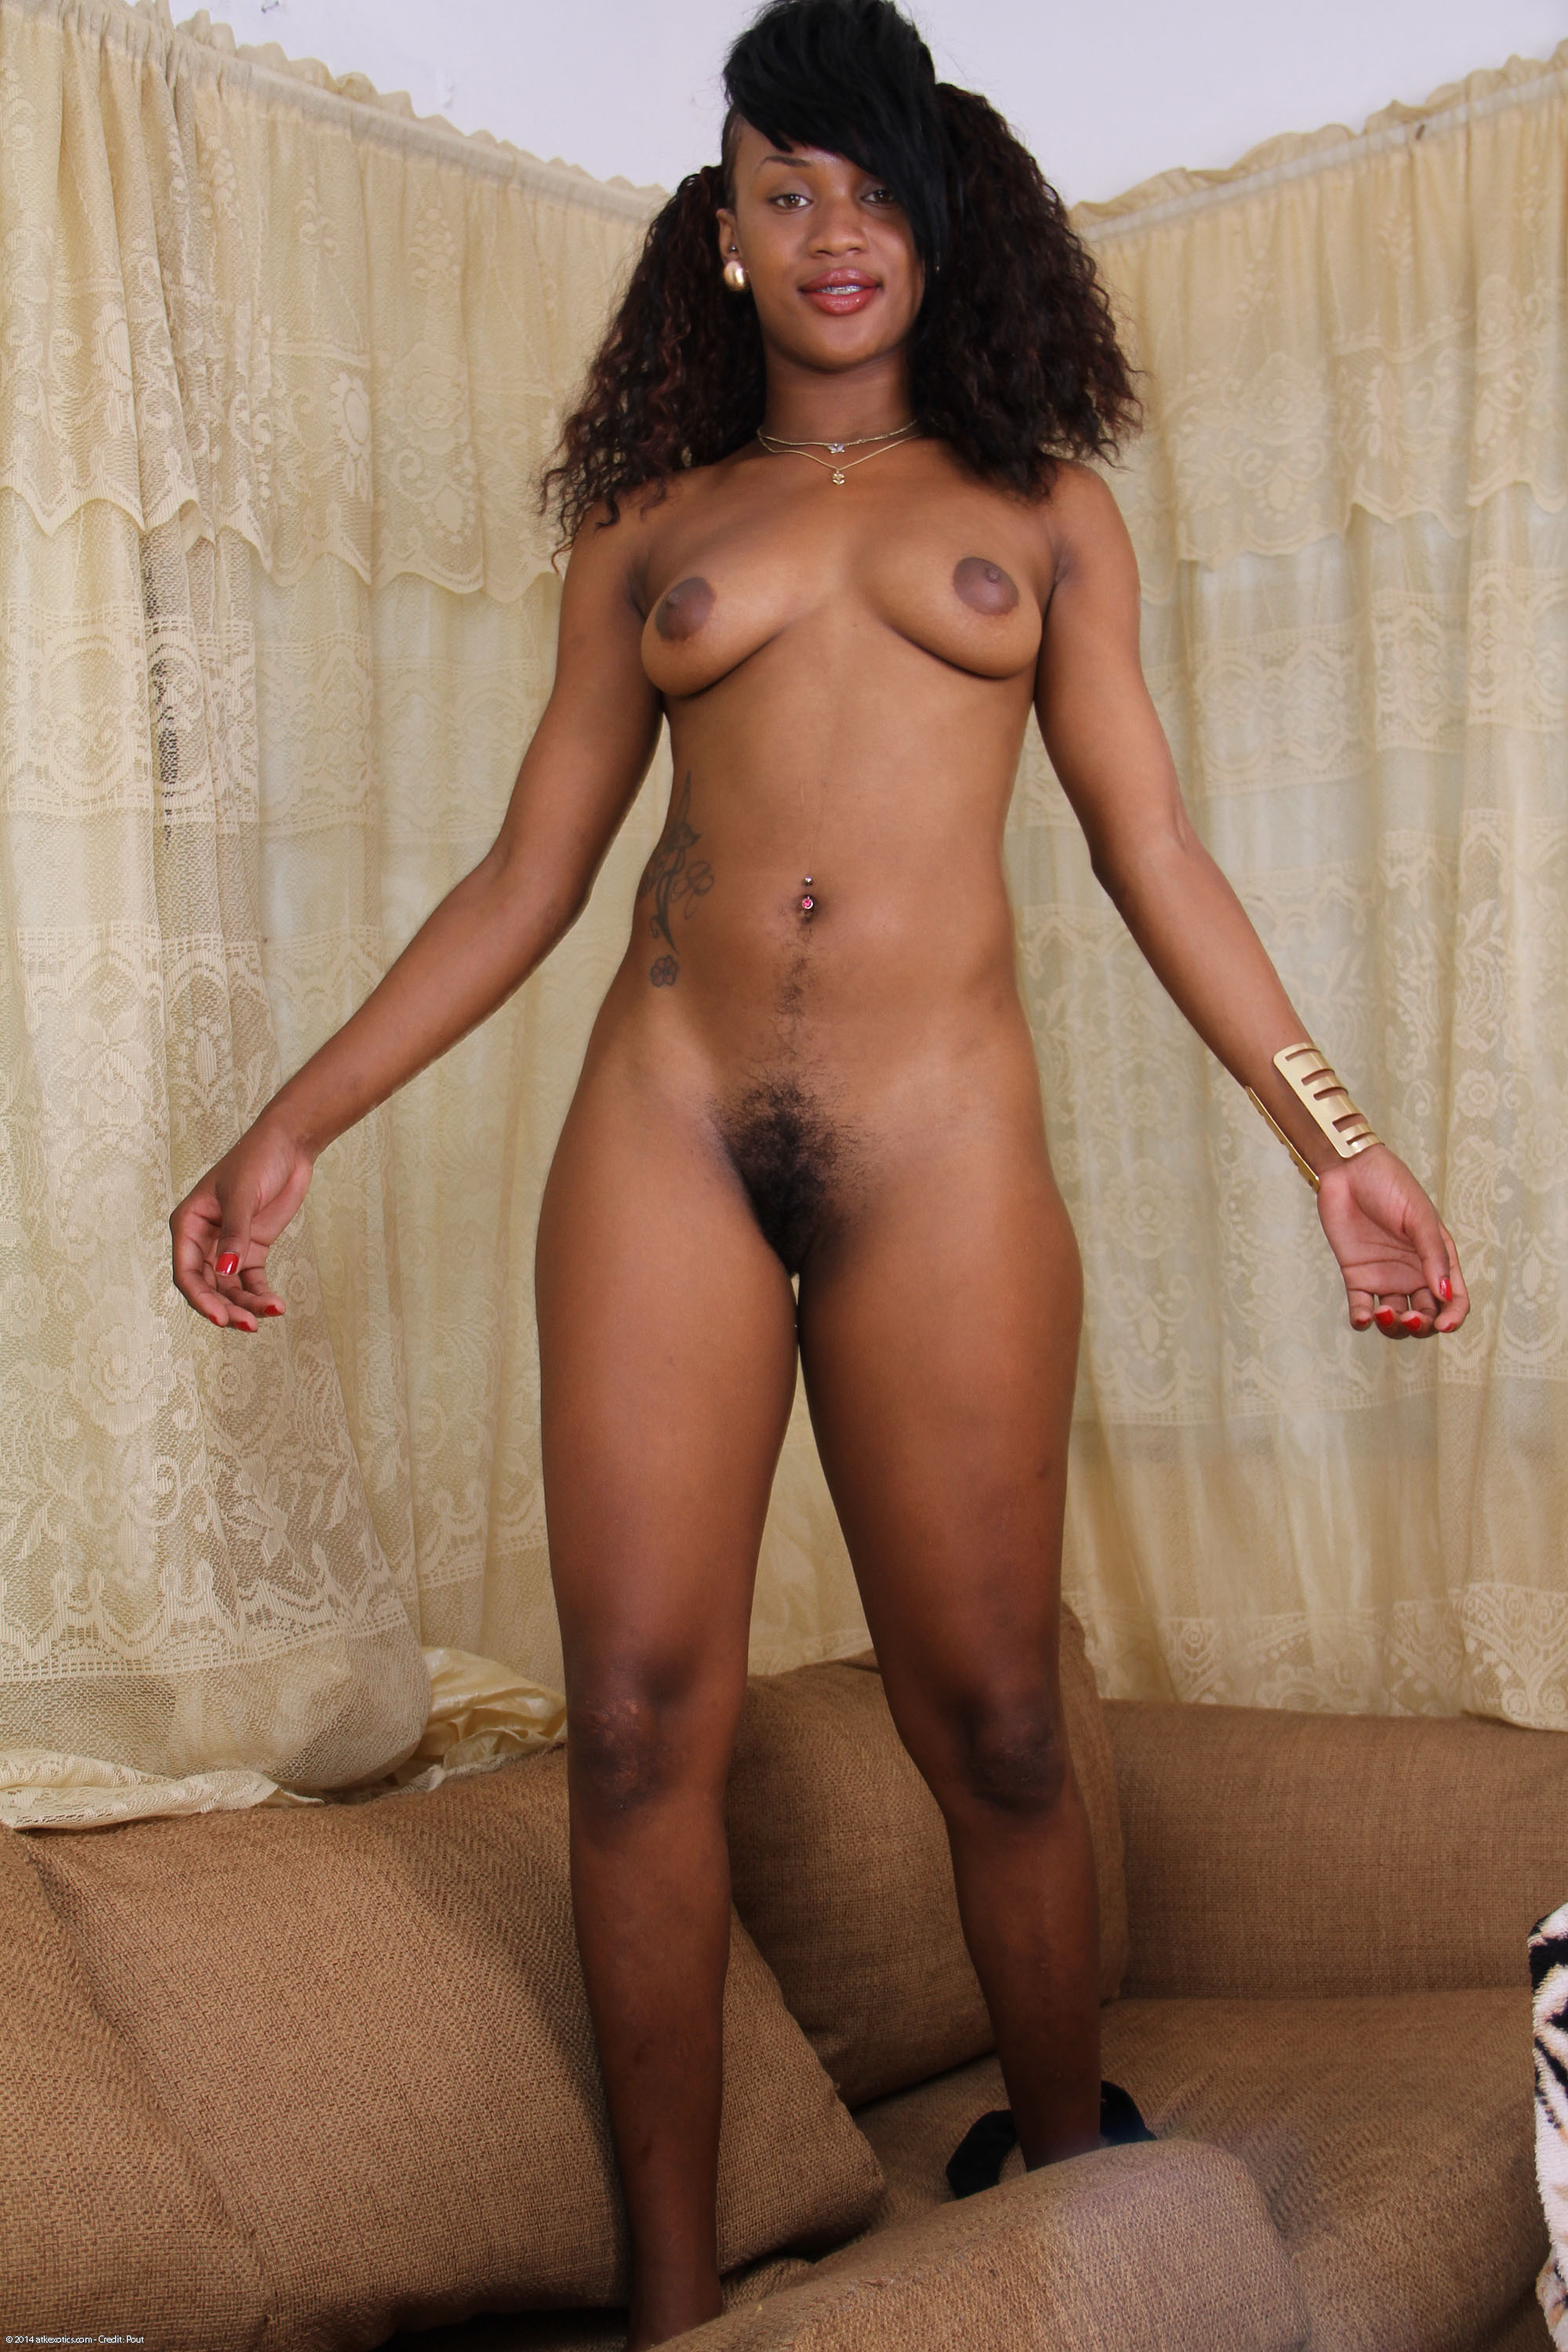 Fat girls atk naked black